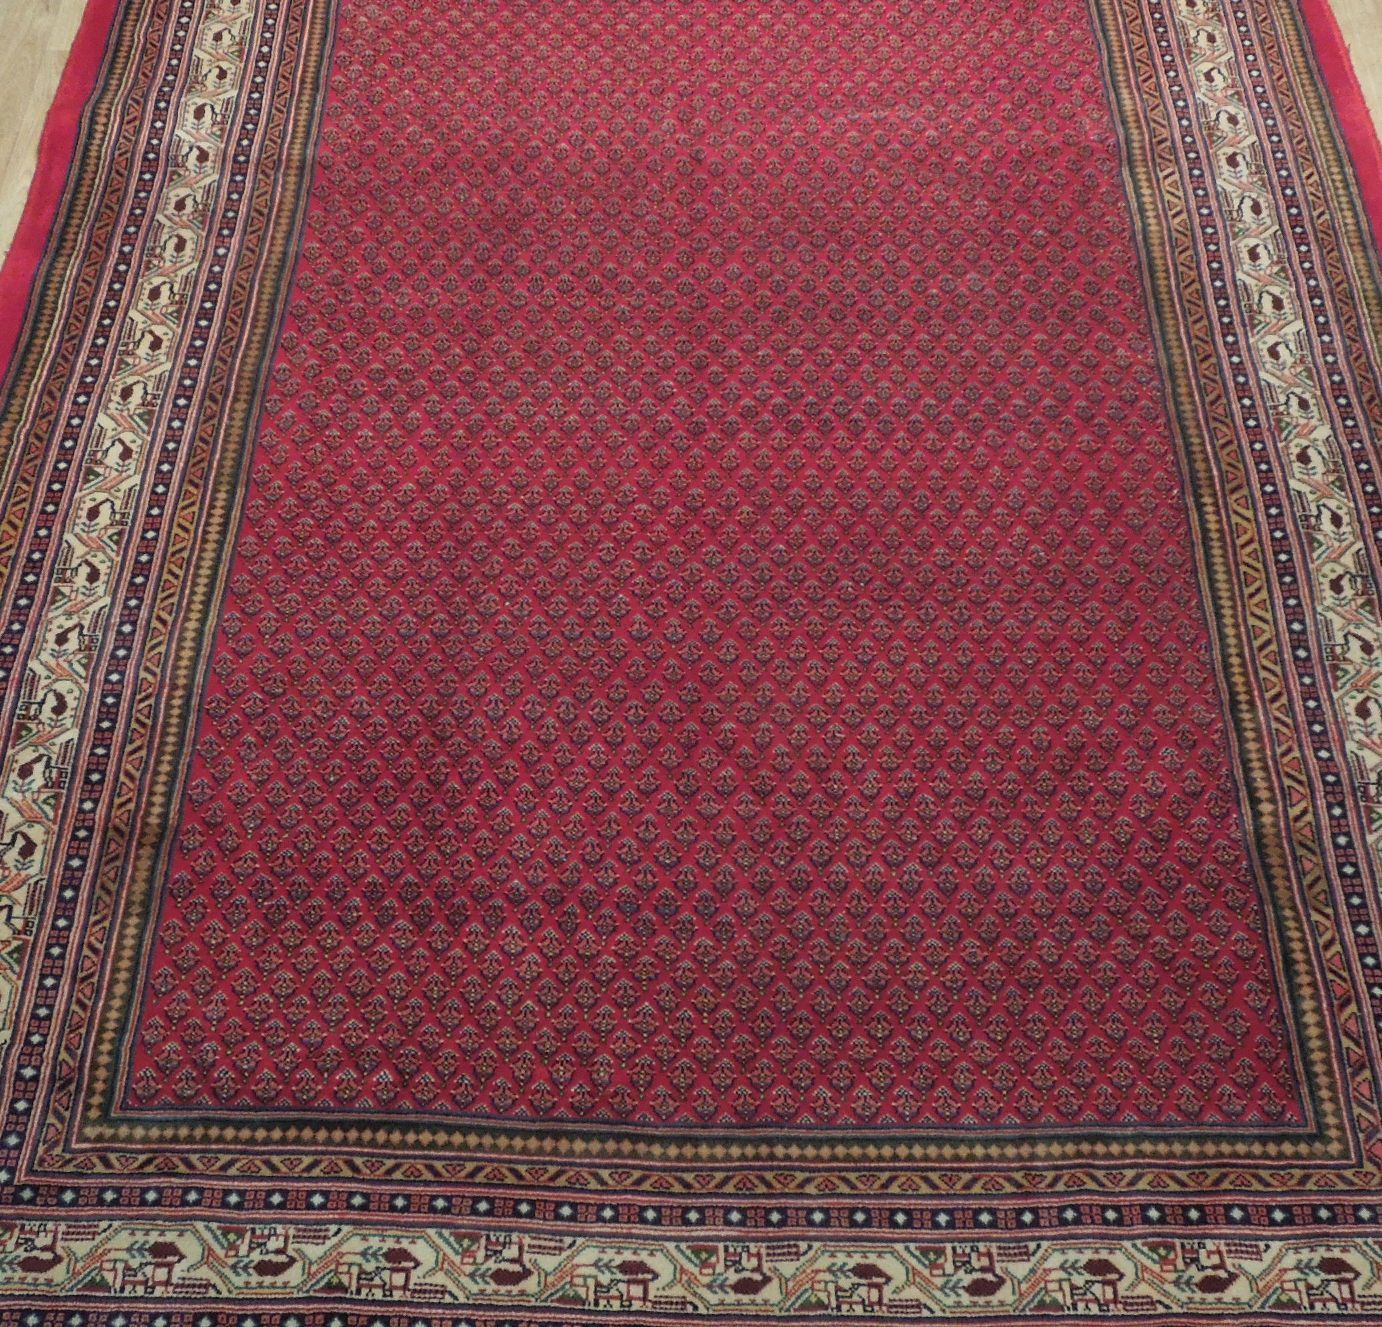 Vivid Boteh Flamed All-Over Persian Hand-Knotted 7x10 Red Mir Wool Area Rug image 9